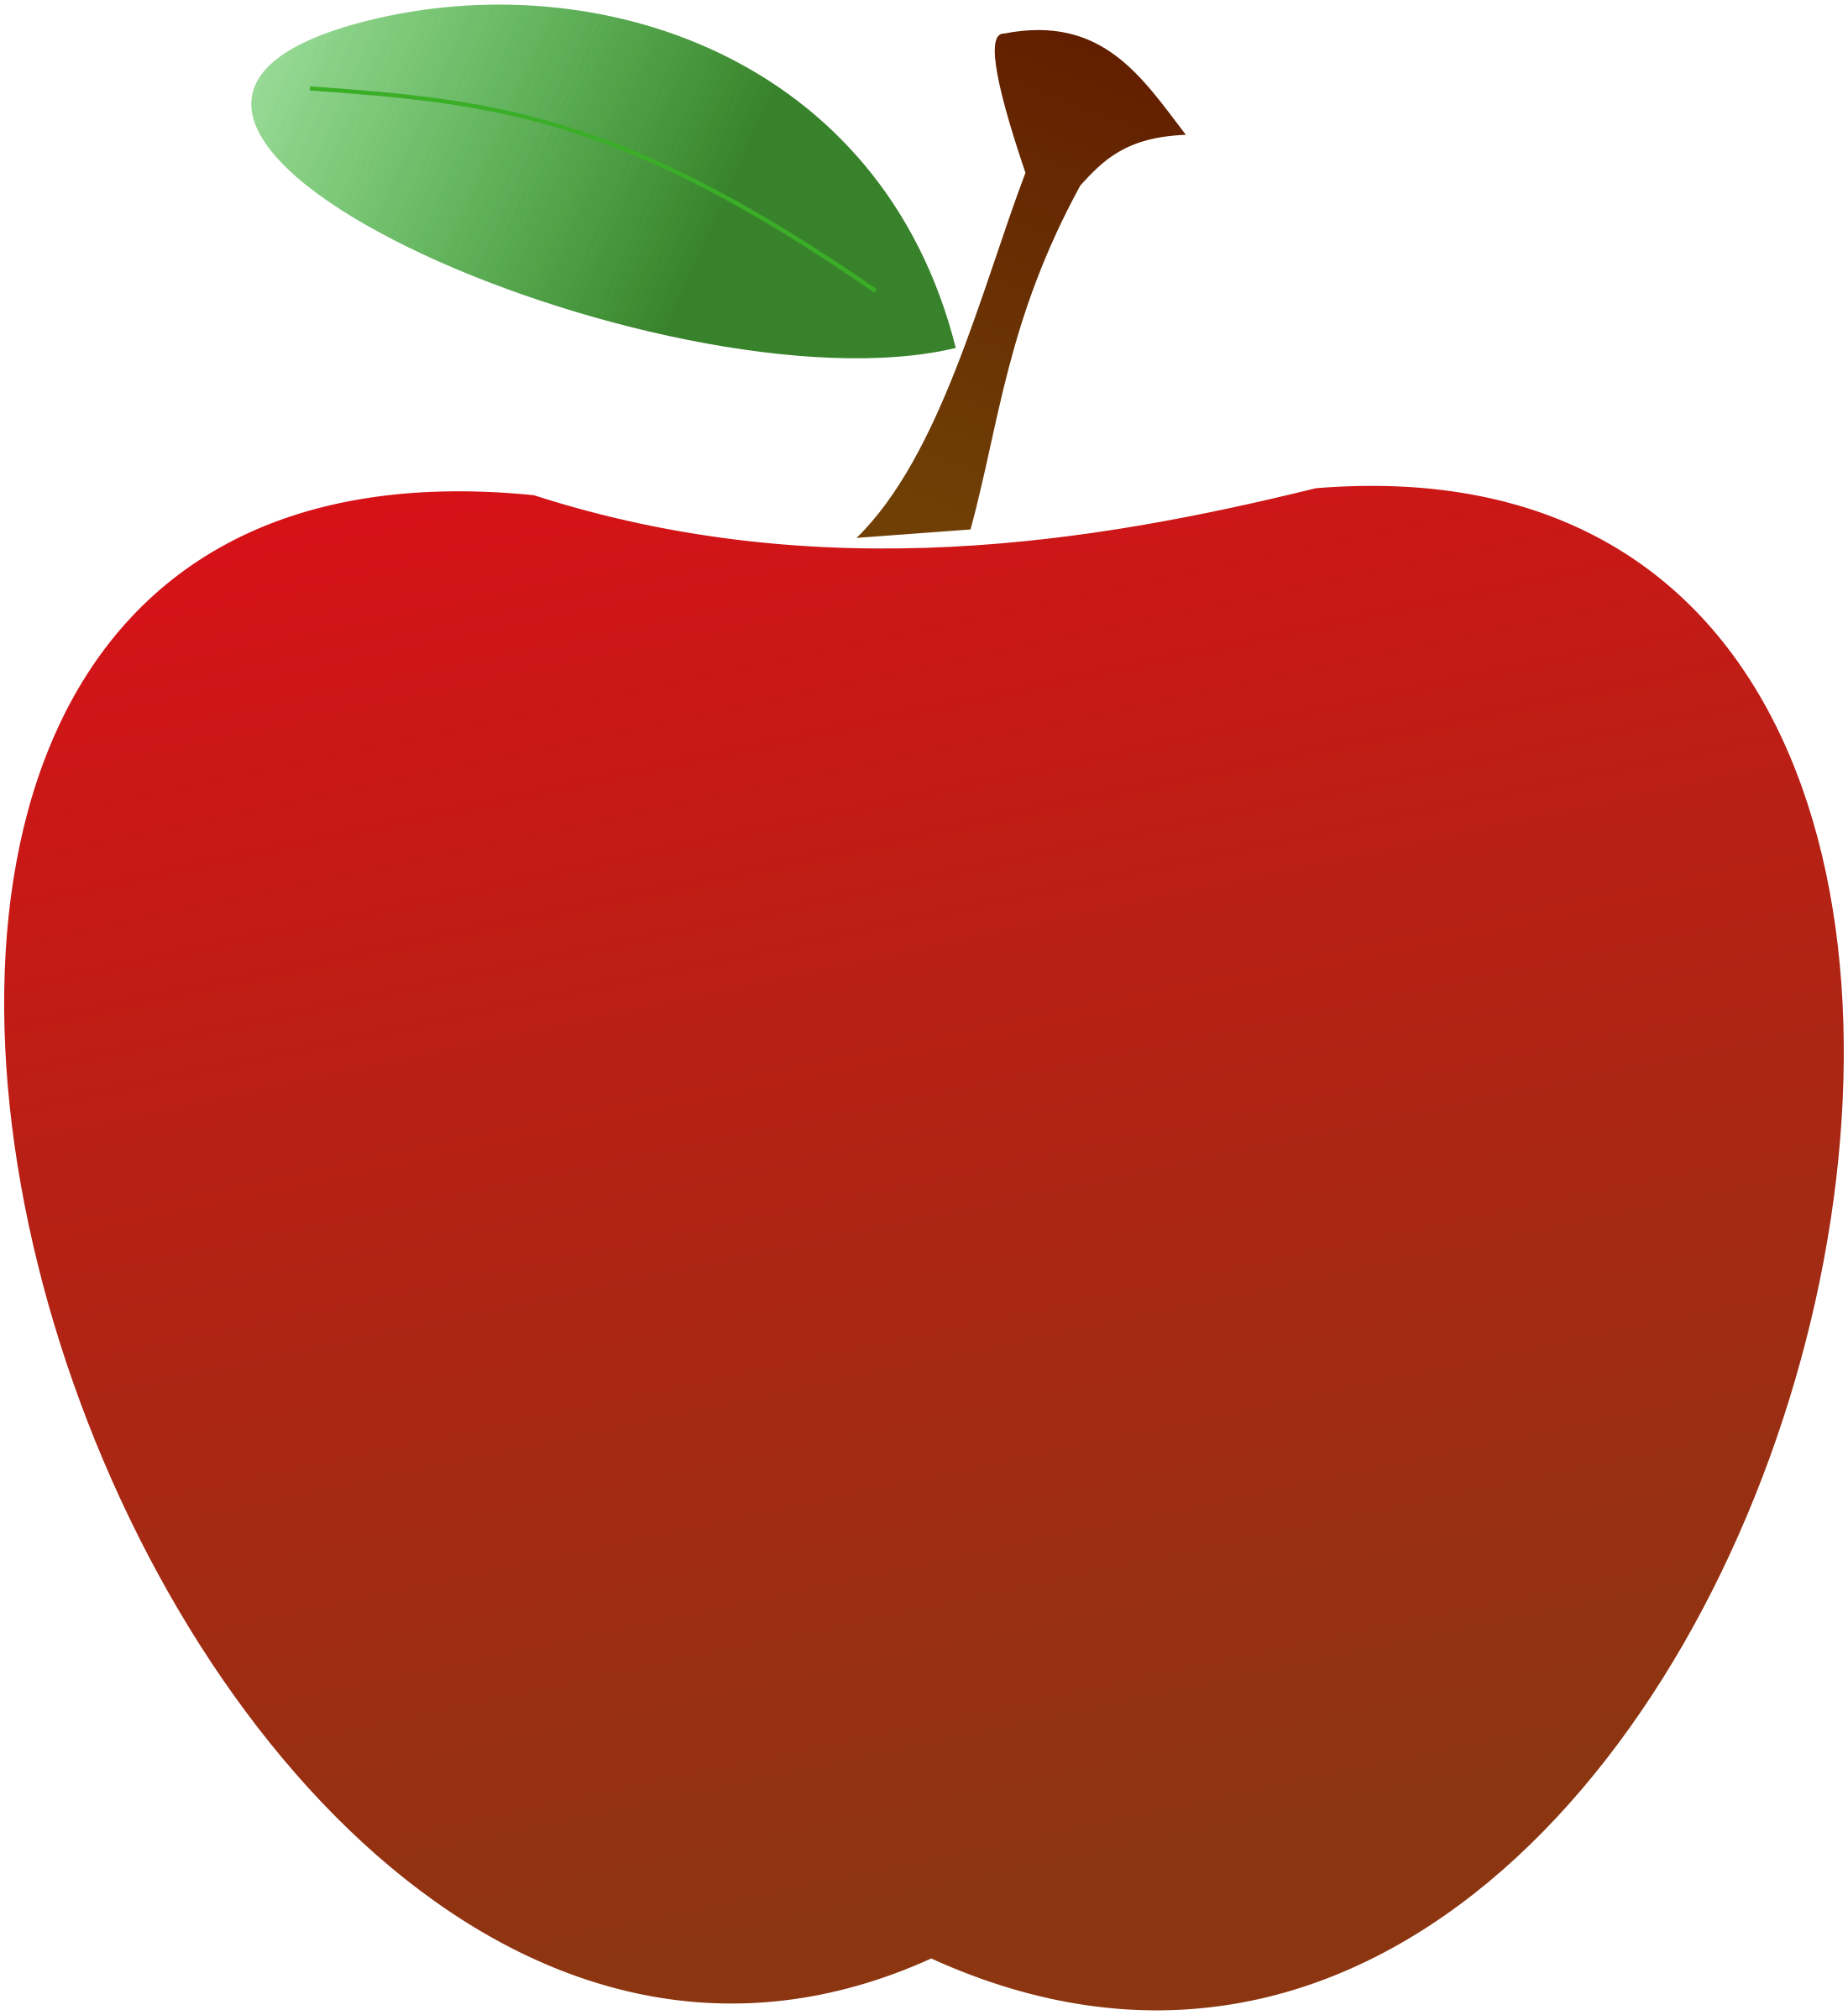 collection of red. Clipart apple transparent background